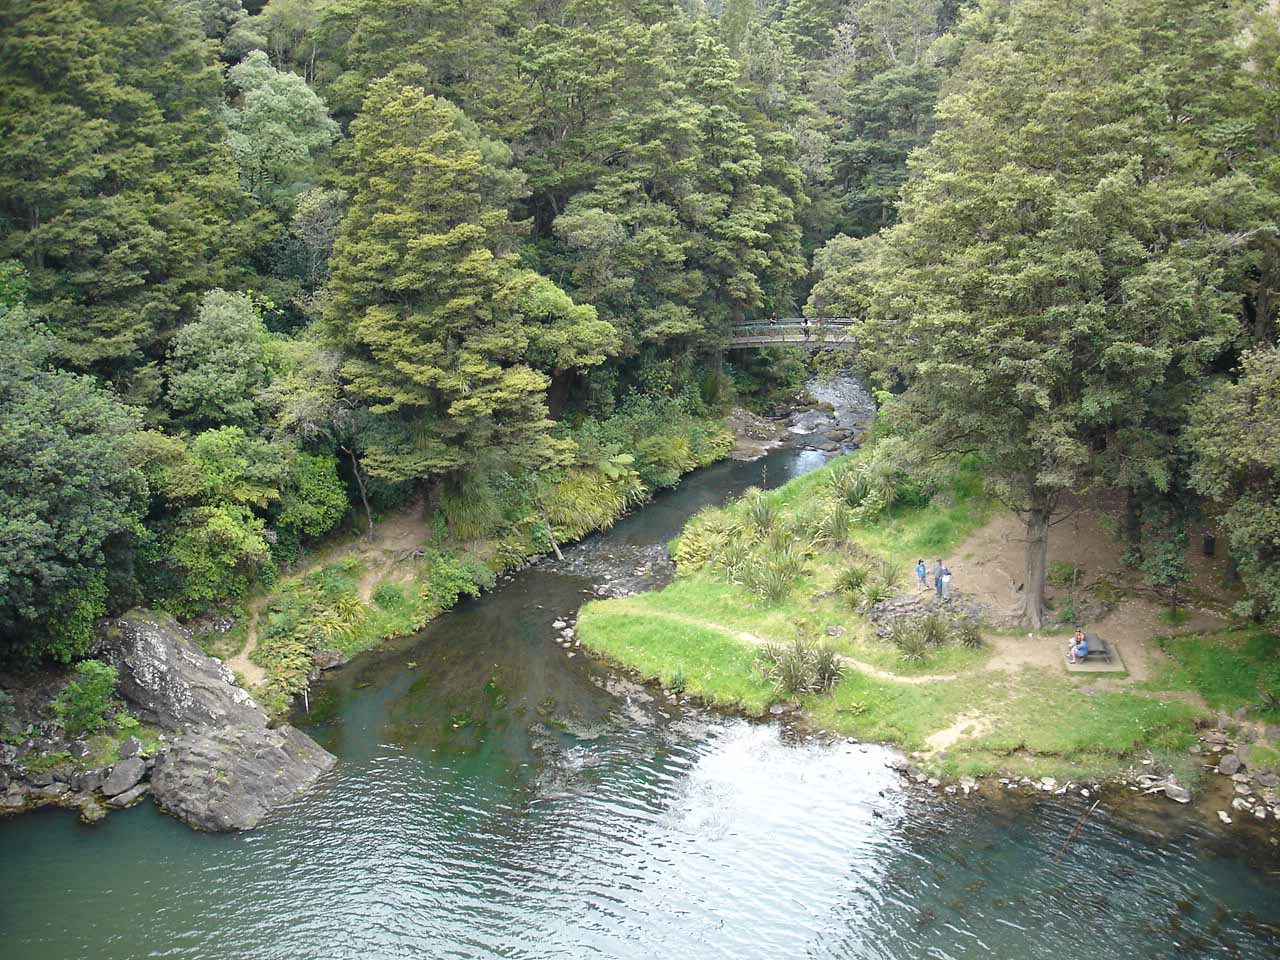 Looking down at the picnic table and bridge across the plunge pool of Whangarei Falls from its top